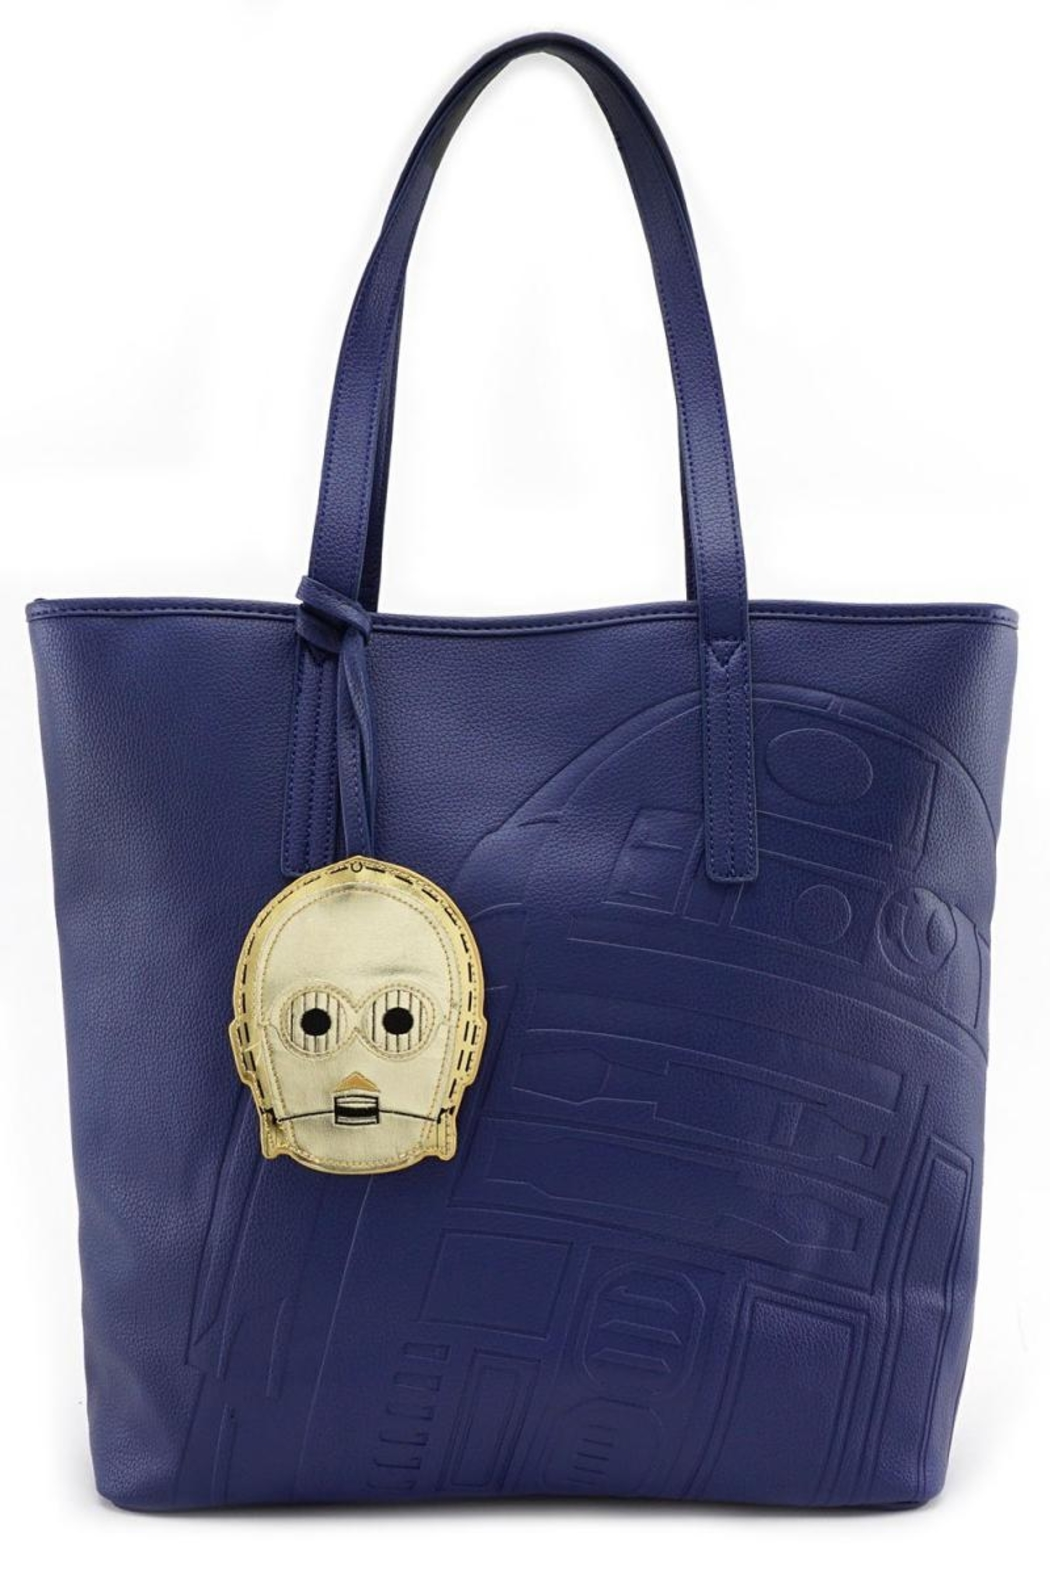 Loungefly R2d2 Embossed Tote-Bag - Main Image